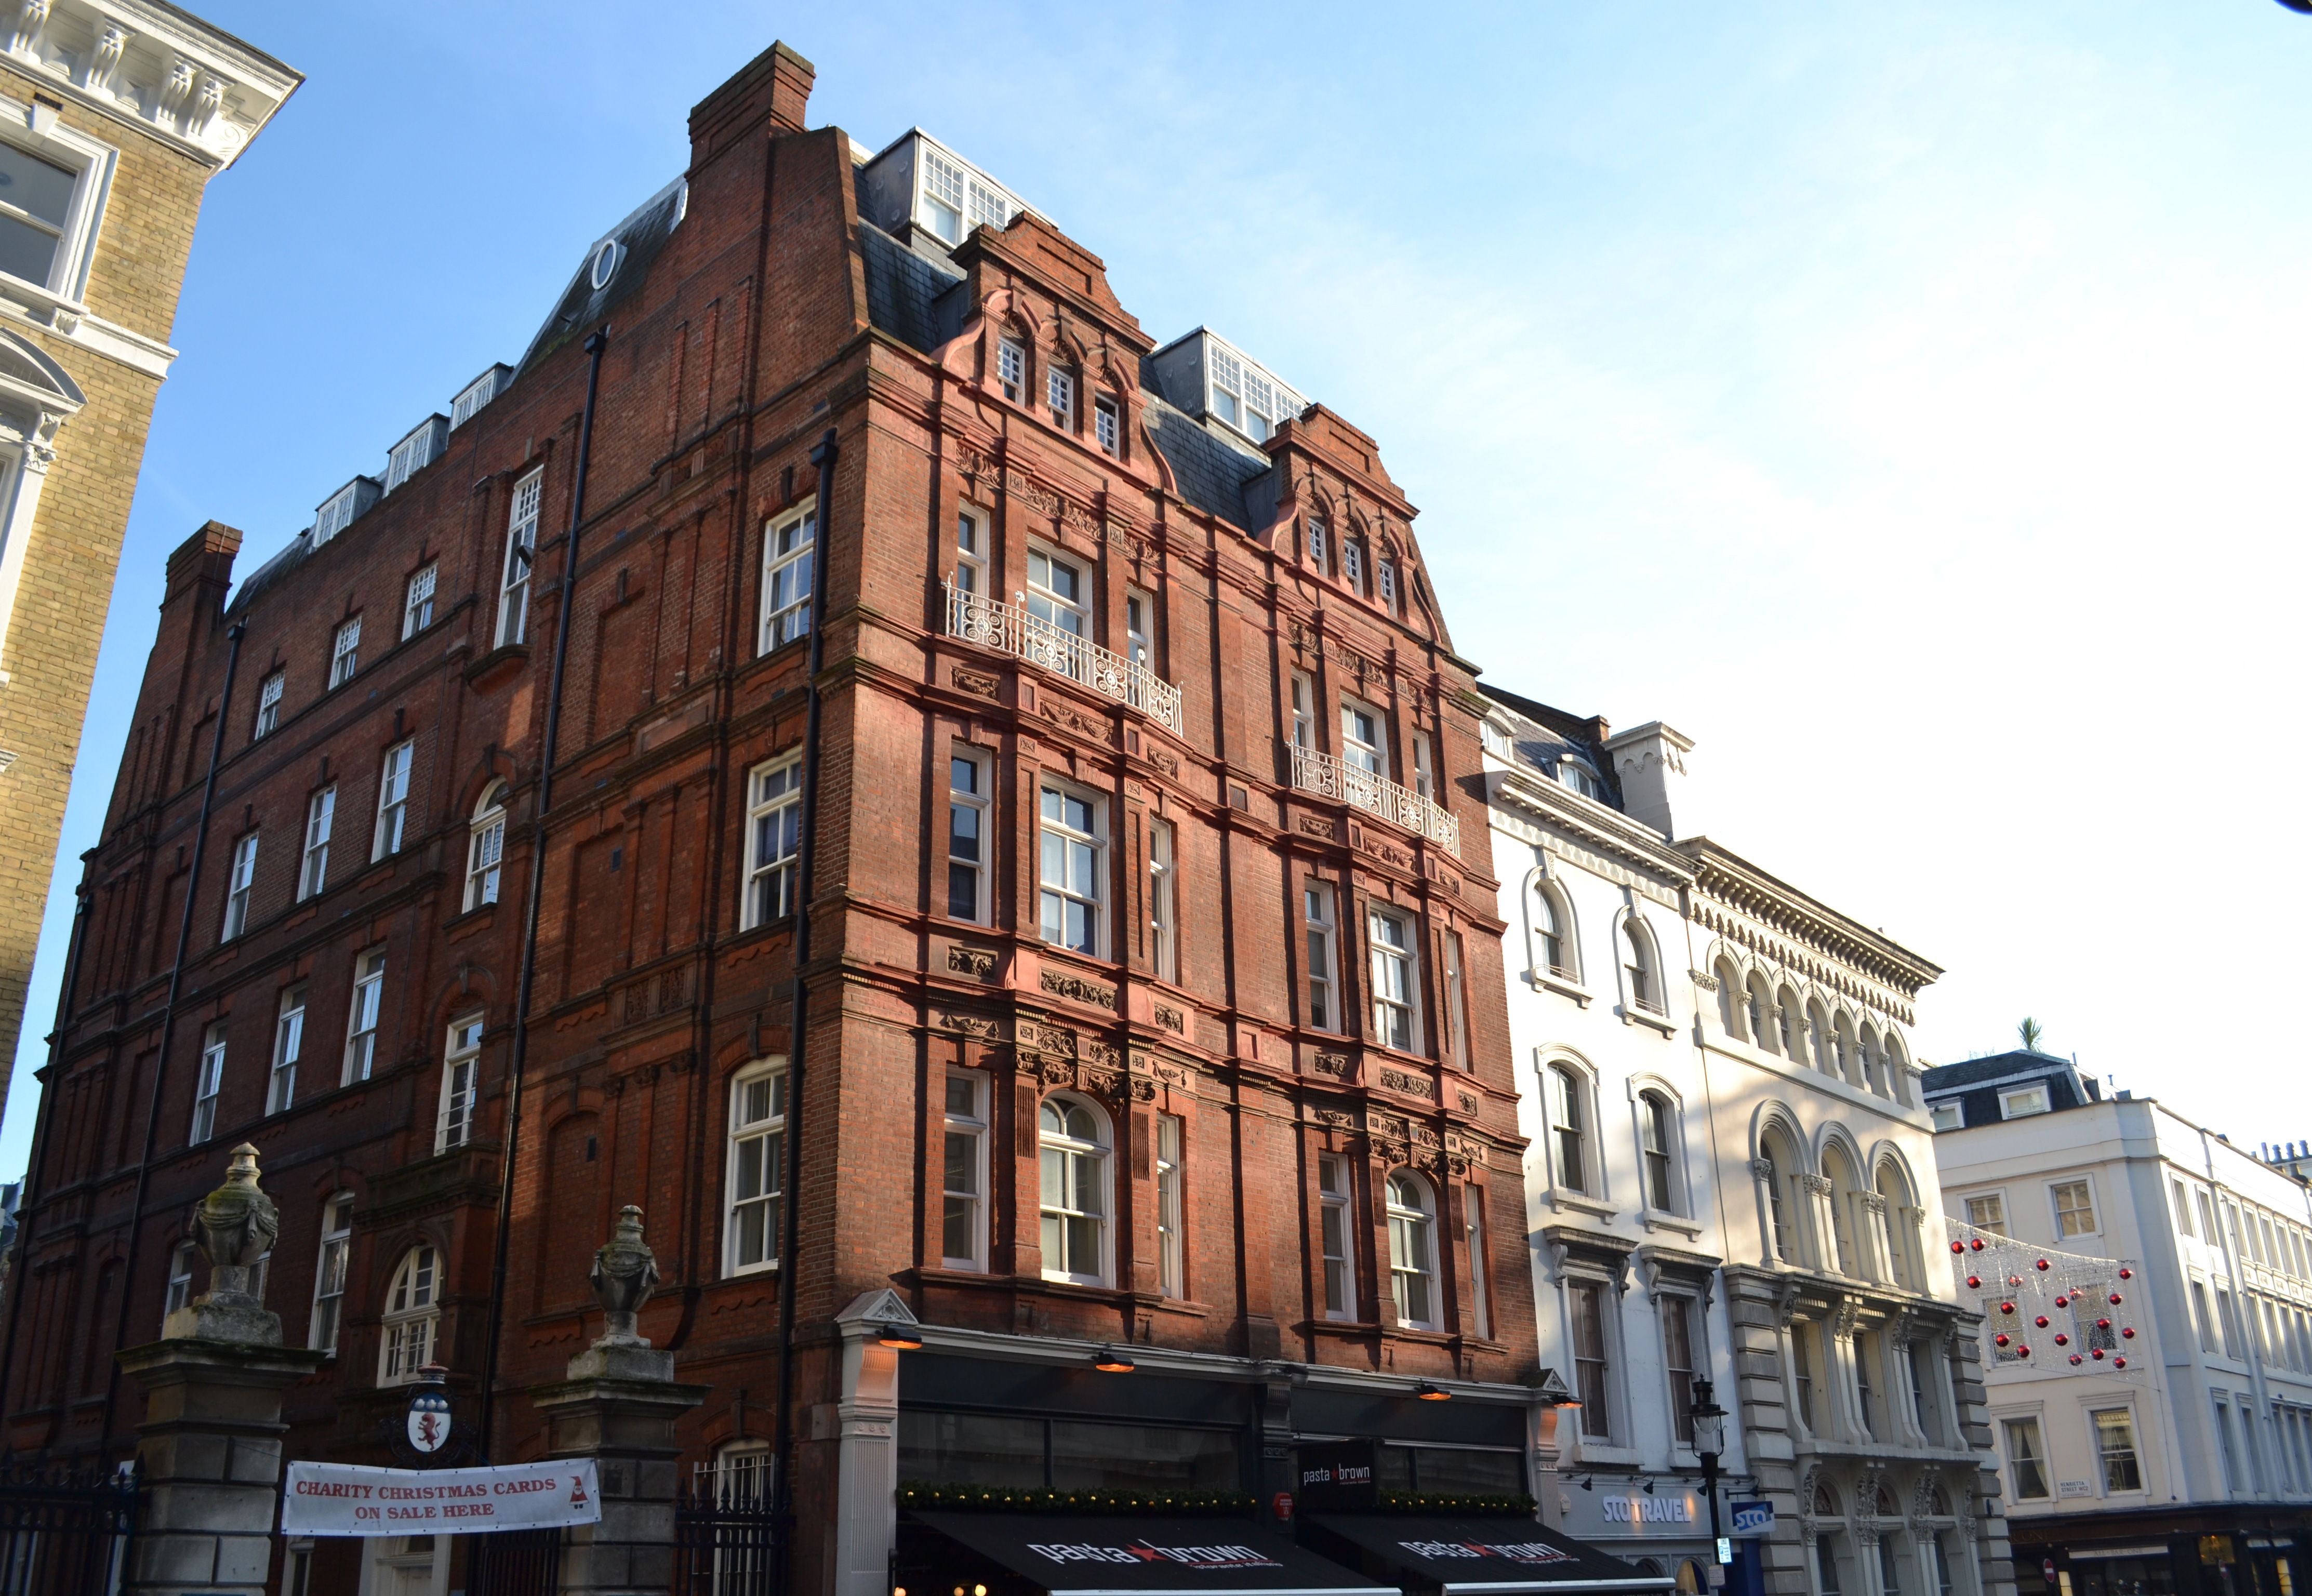 Planning Permission granted for 31-32 Bedford Street, Covent Garden